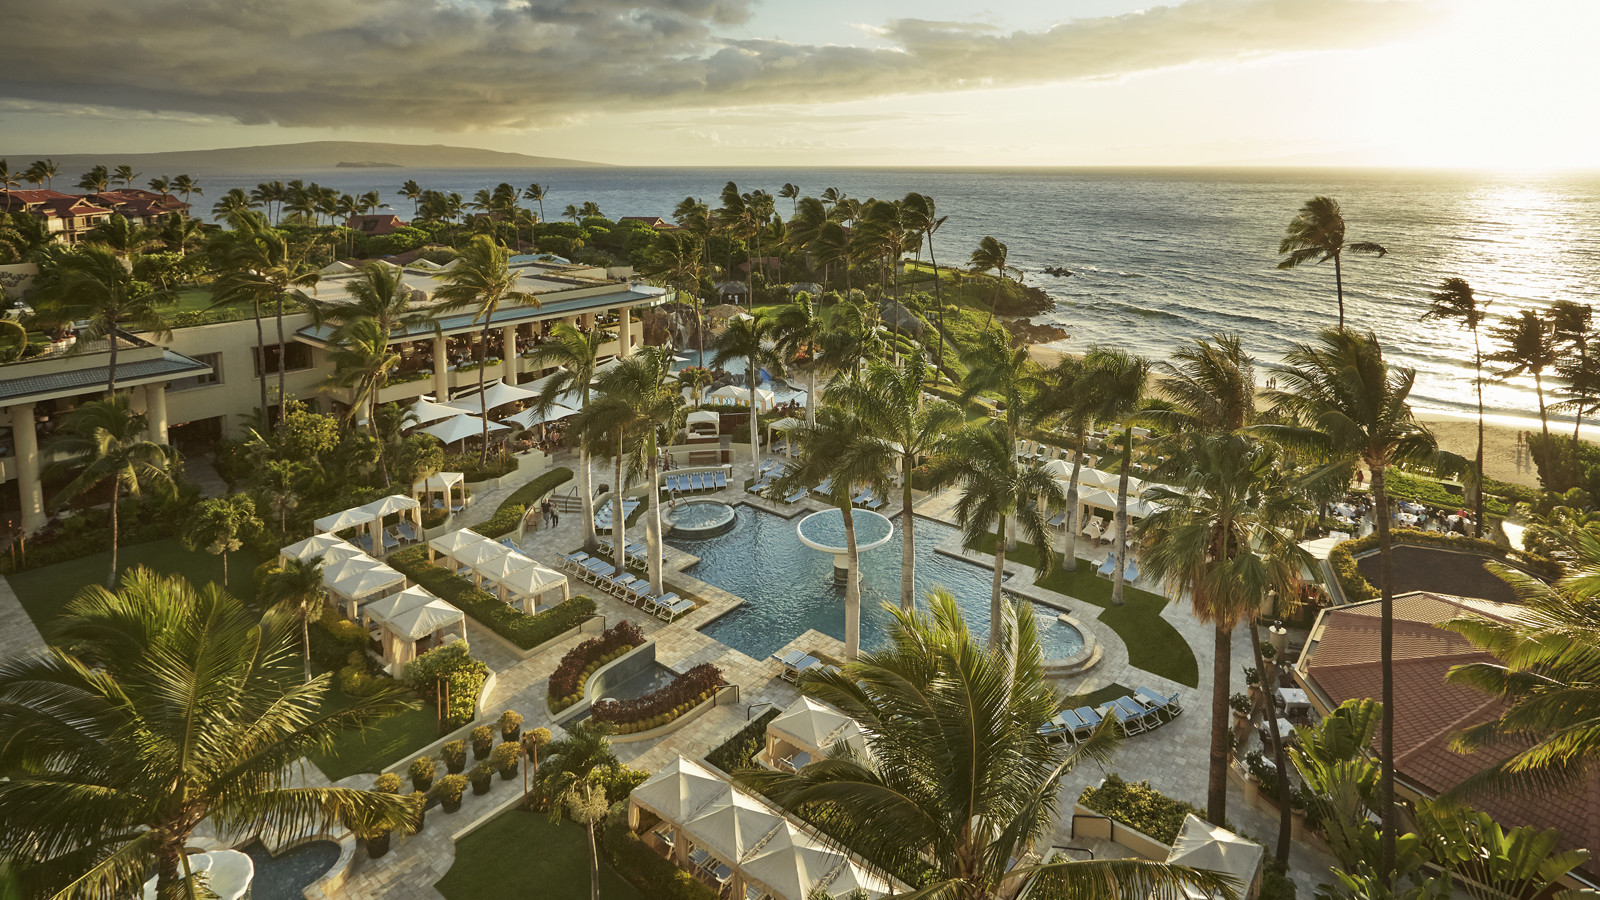 news-main-four-seasons-resort-maui-invites-guests-who-give-back-to-come-back.1622200818.jpg